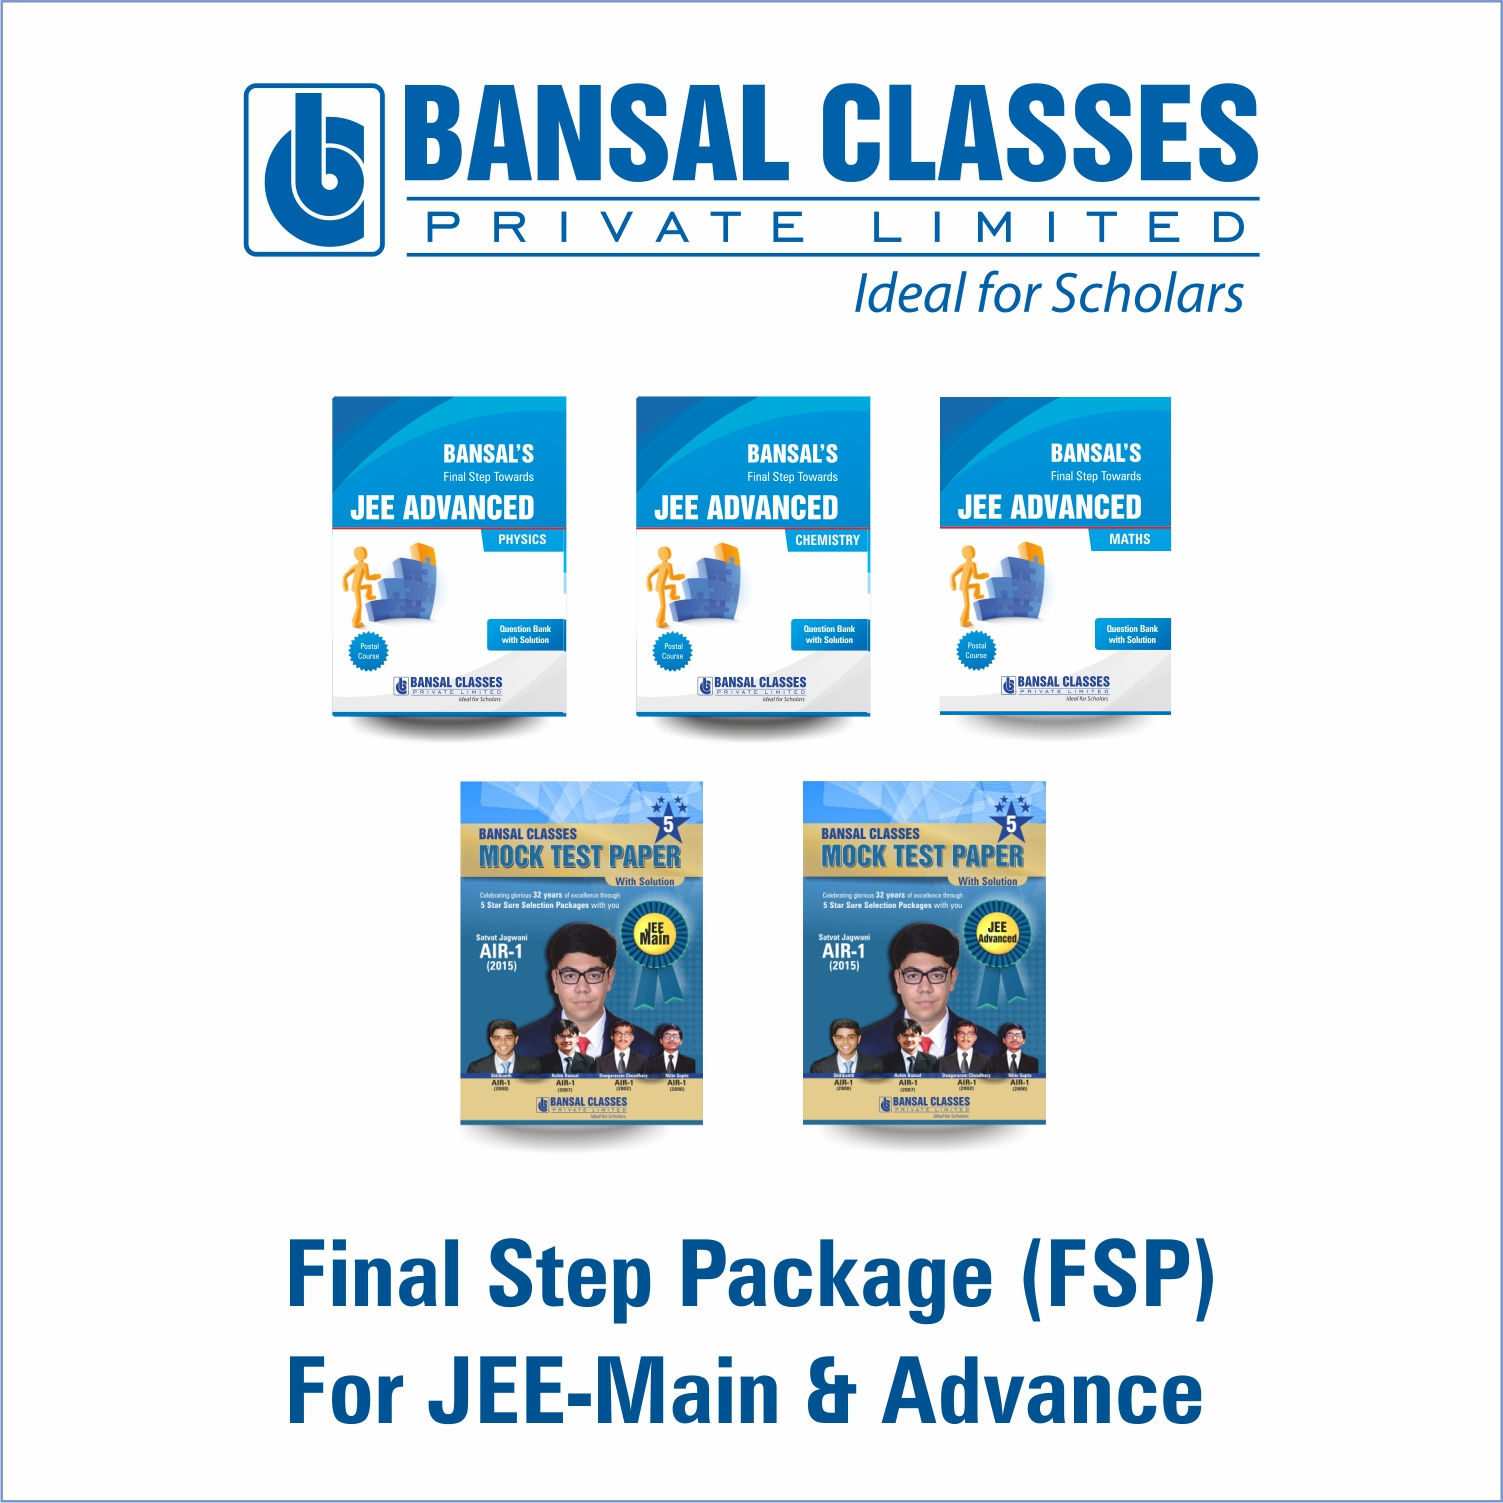 Final Step Package Target - IIT-JEE (Question Bank & Mock Test Paper Booklet)